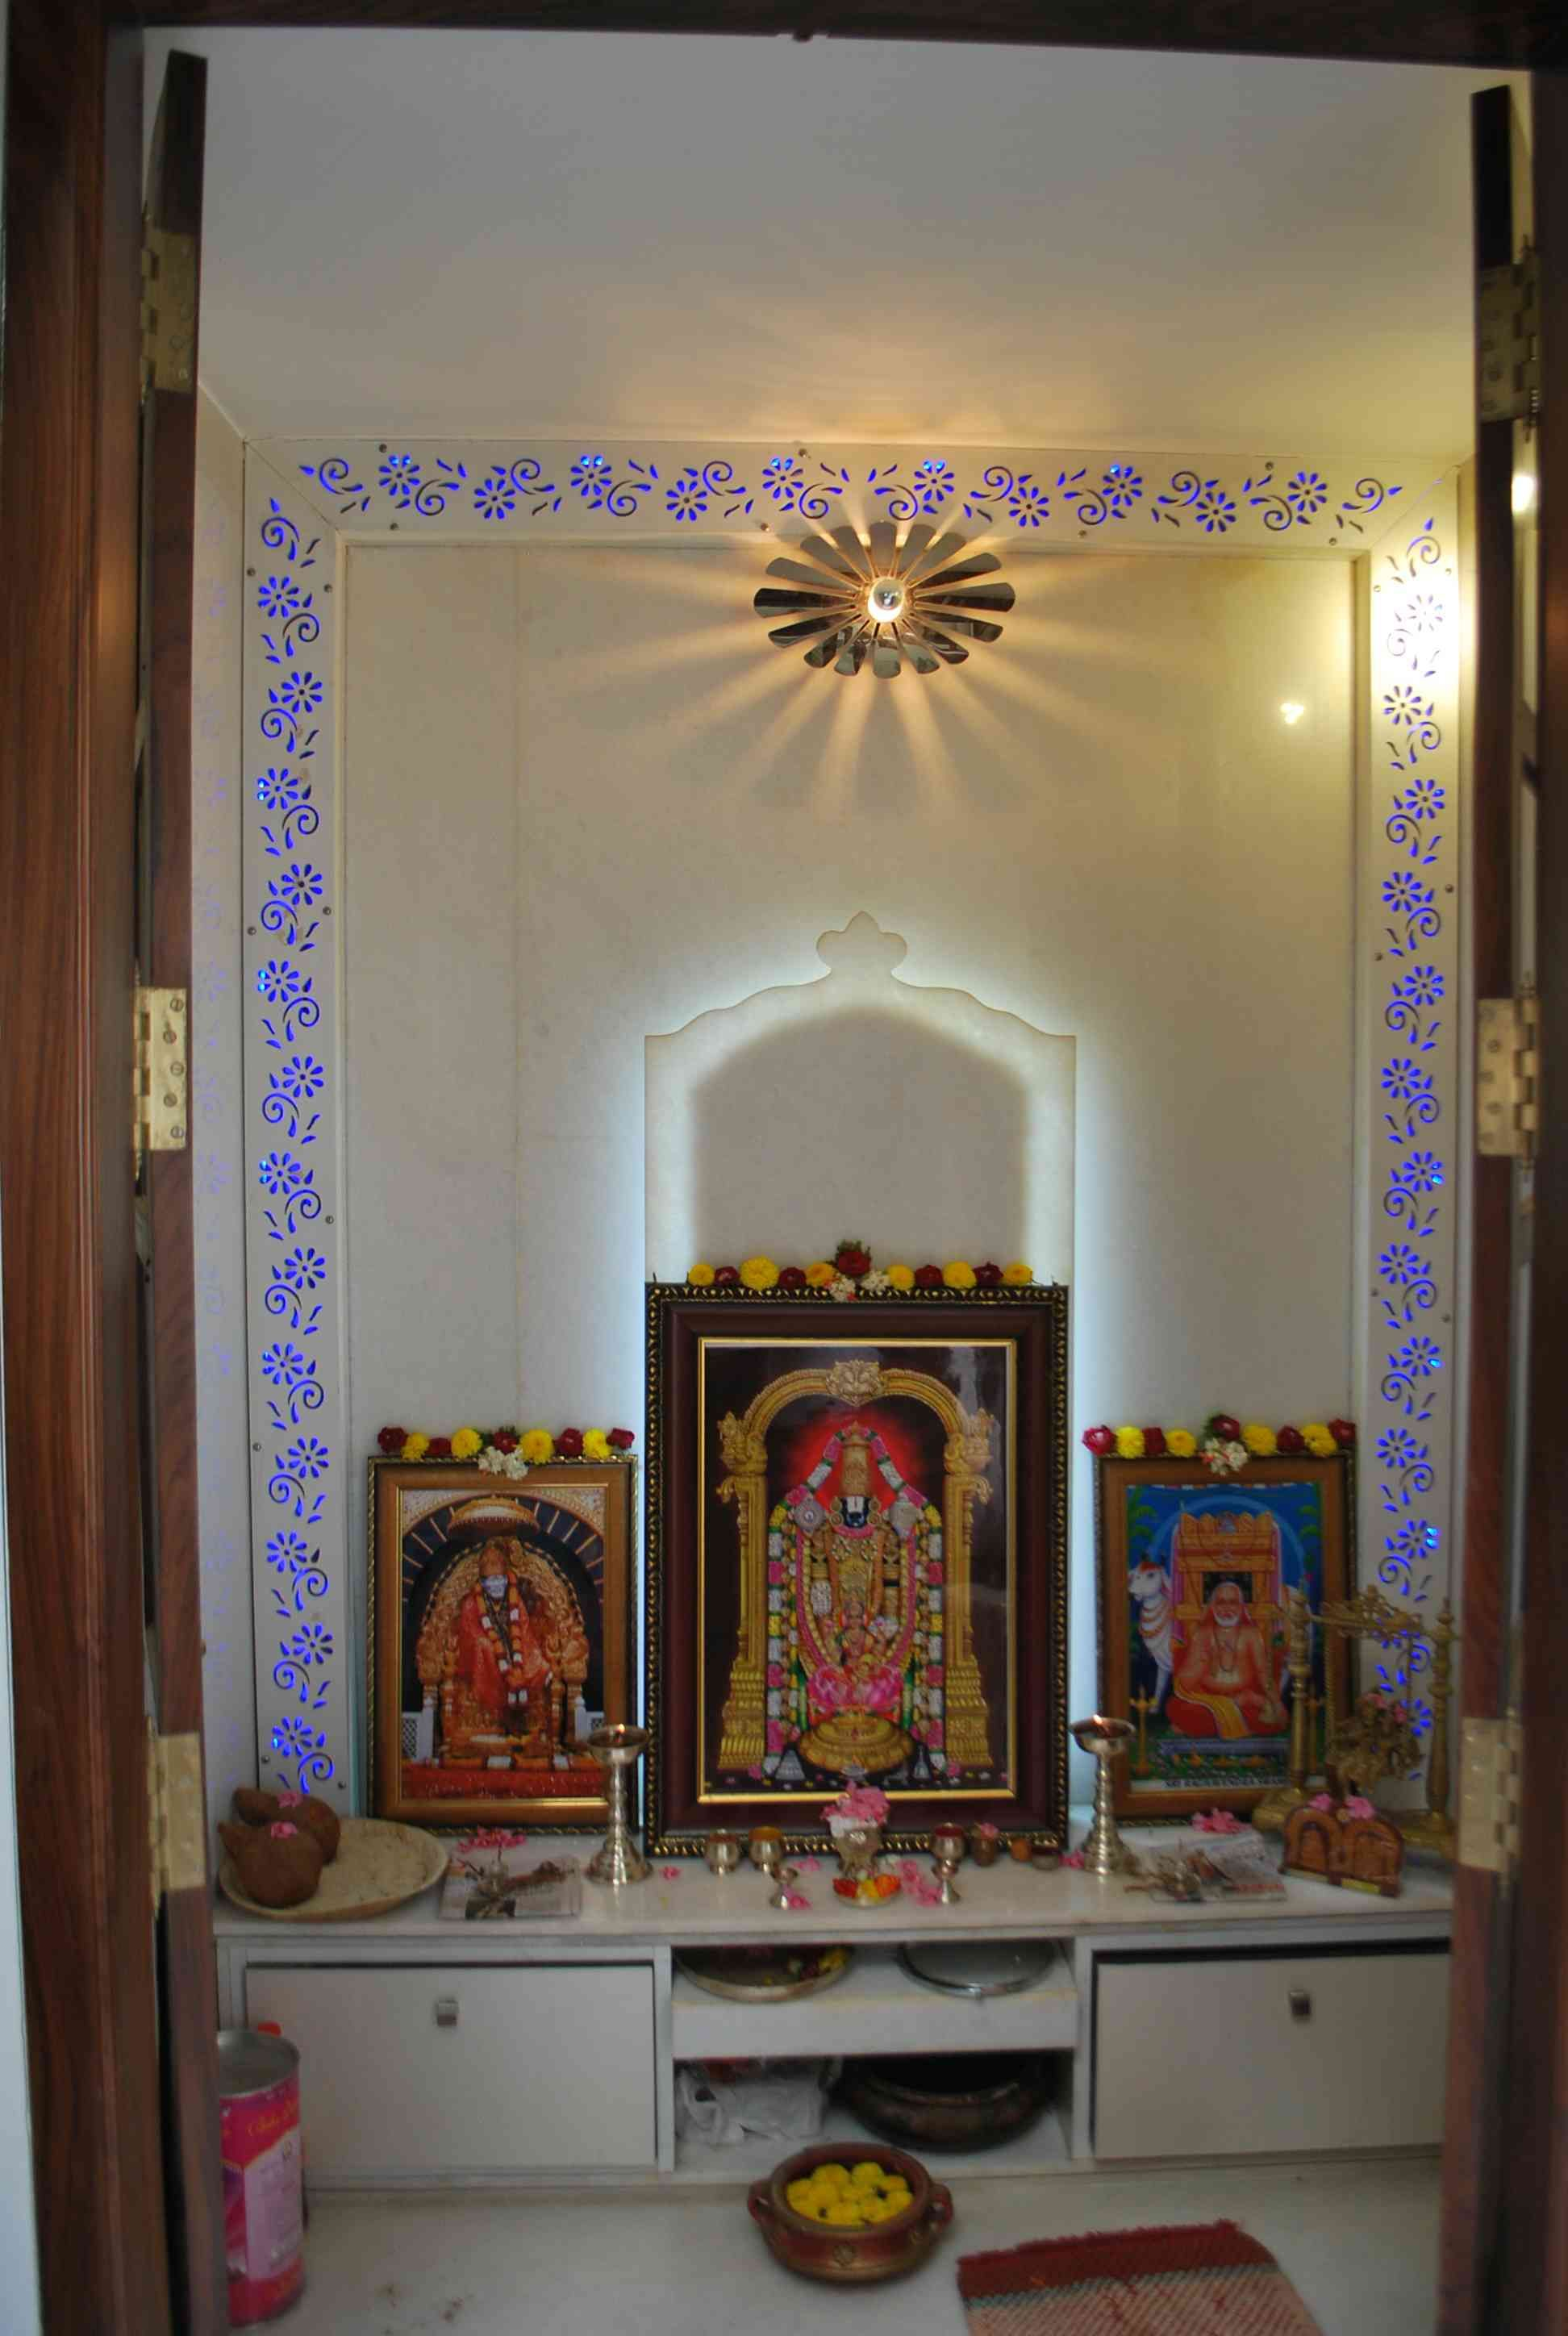 Pooja Room Door Designs Pooja Room: Pooja Mandir Design In Home.